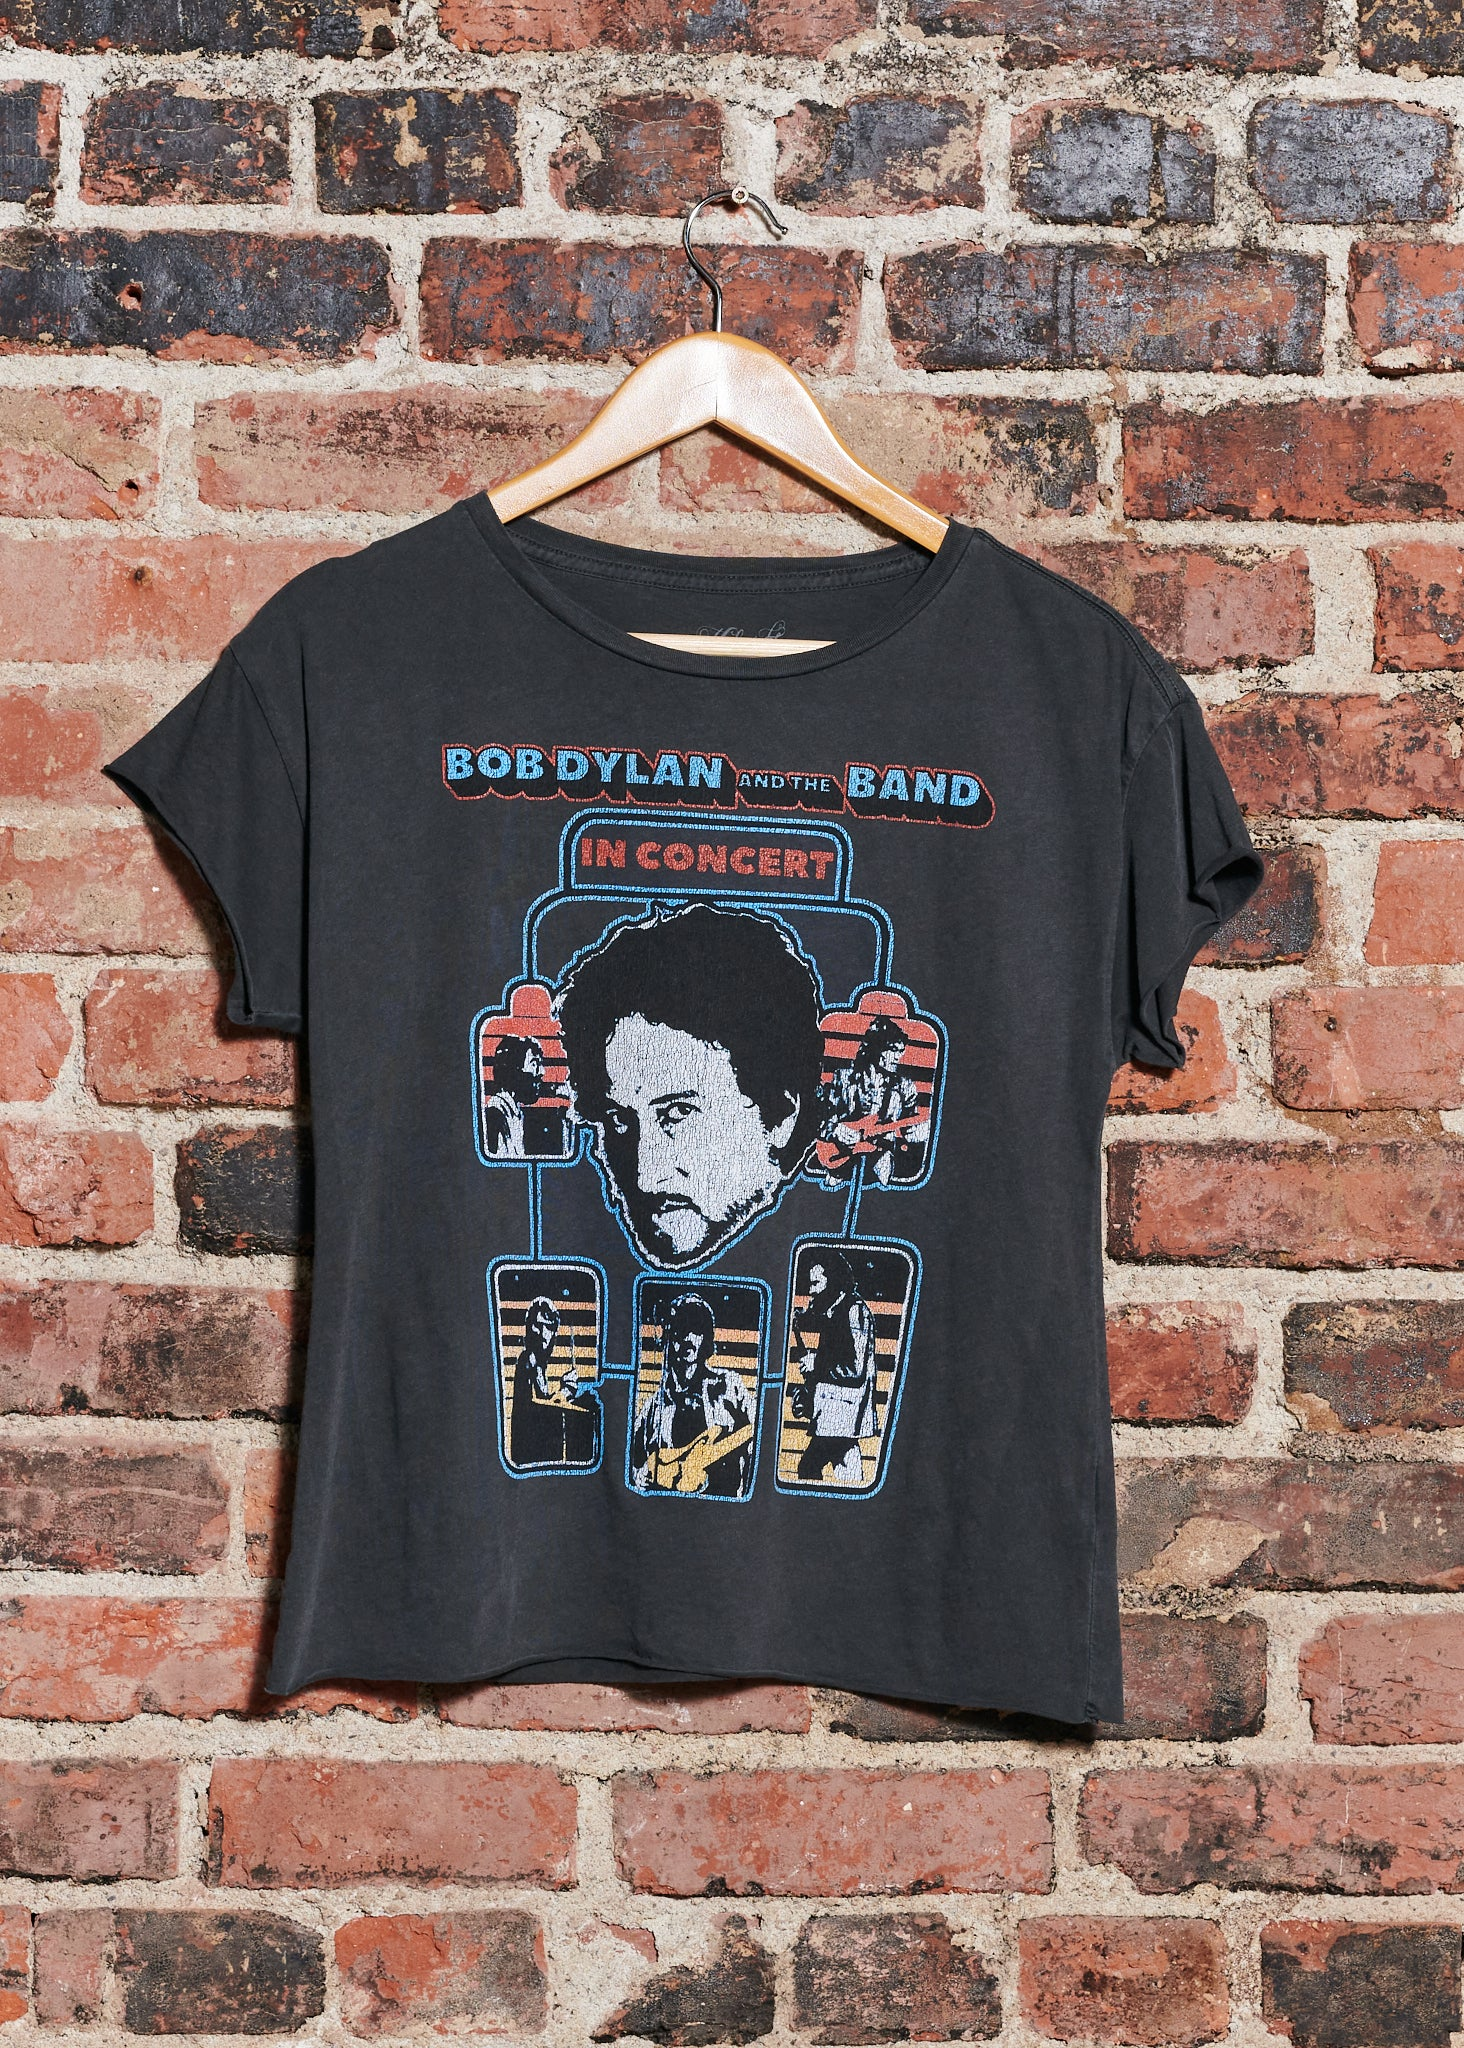 BOB DYLAN AND THE BAND IN CONCERT CUT OFF TEE